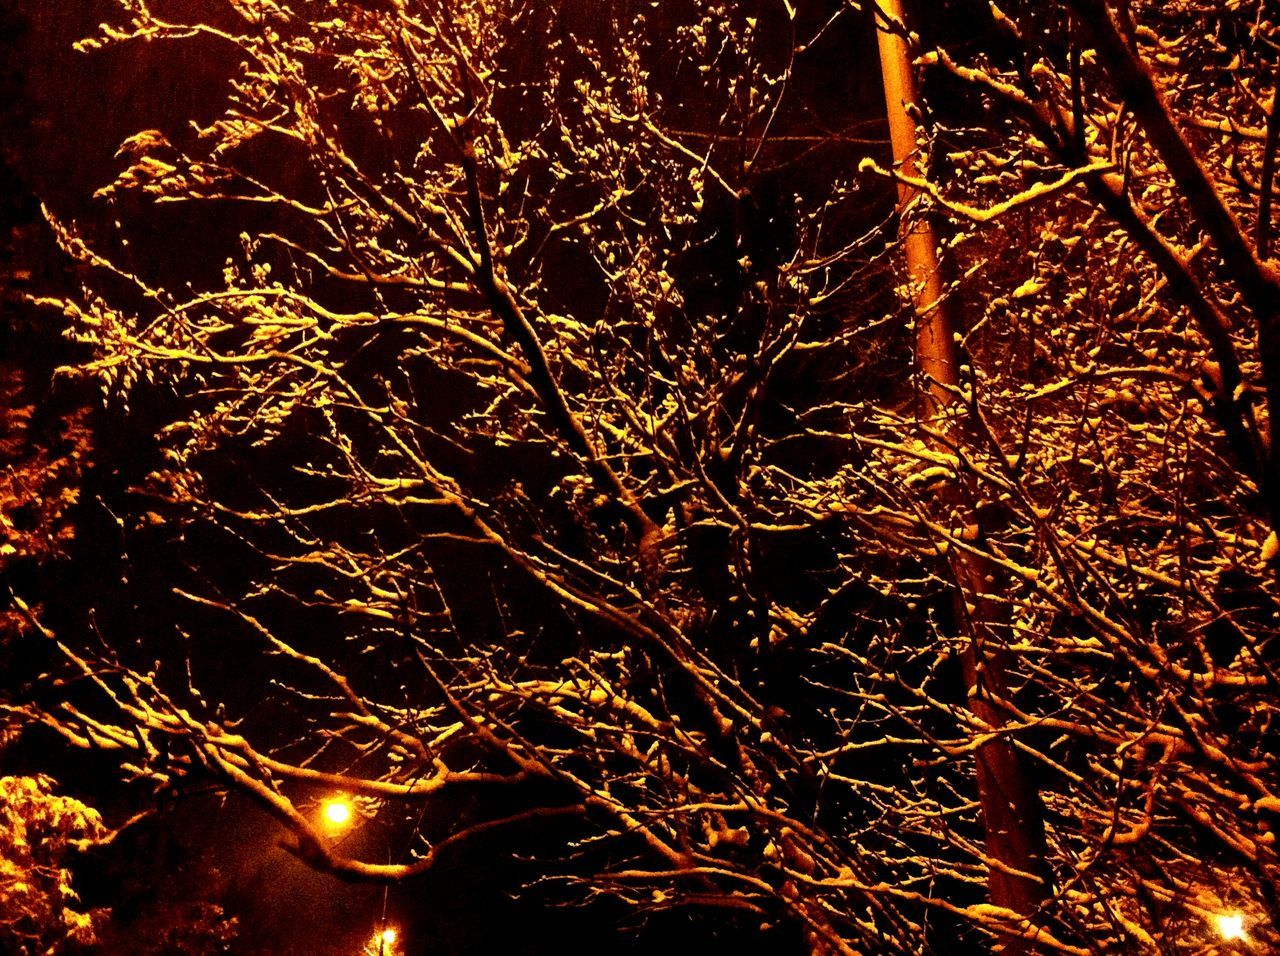 Heat - Temperature Orange Color No People Abstract Close-up Backgrounds Night Outdoors Molten Lava Nature Christmas Lights Christmas Vibes The Week On Eyem Eyeemcollection Best EyeEm Shot Week On Eyeem Check This Out Christmas Decoration Illuminated EyeEm Gallery Nightphotography